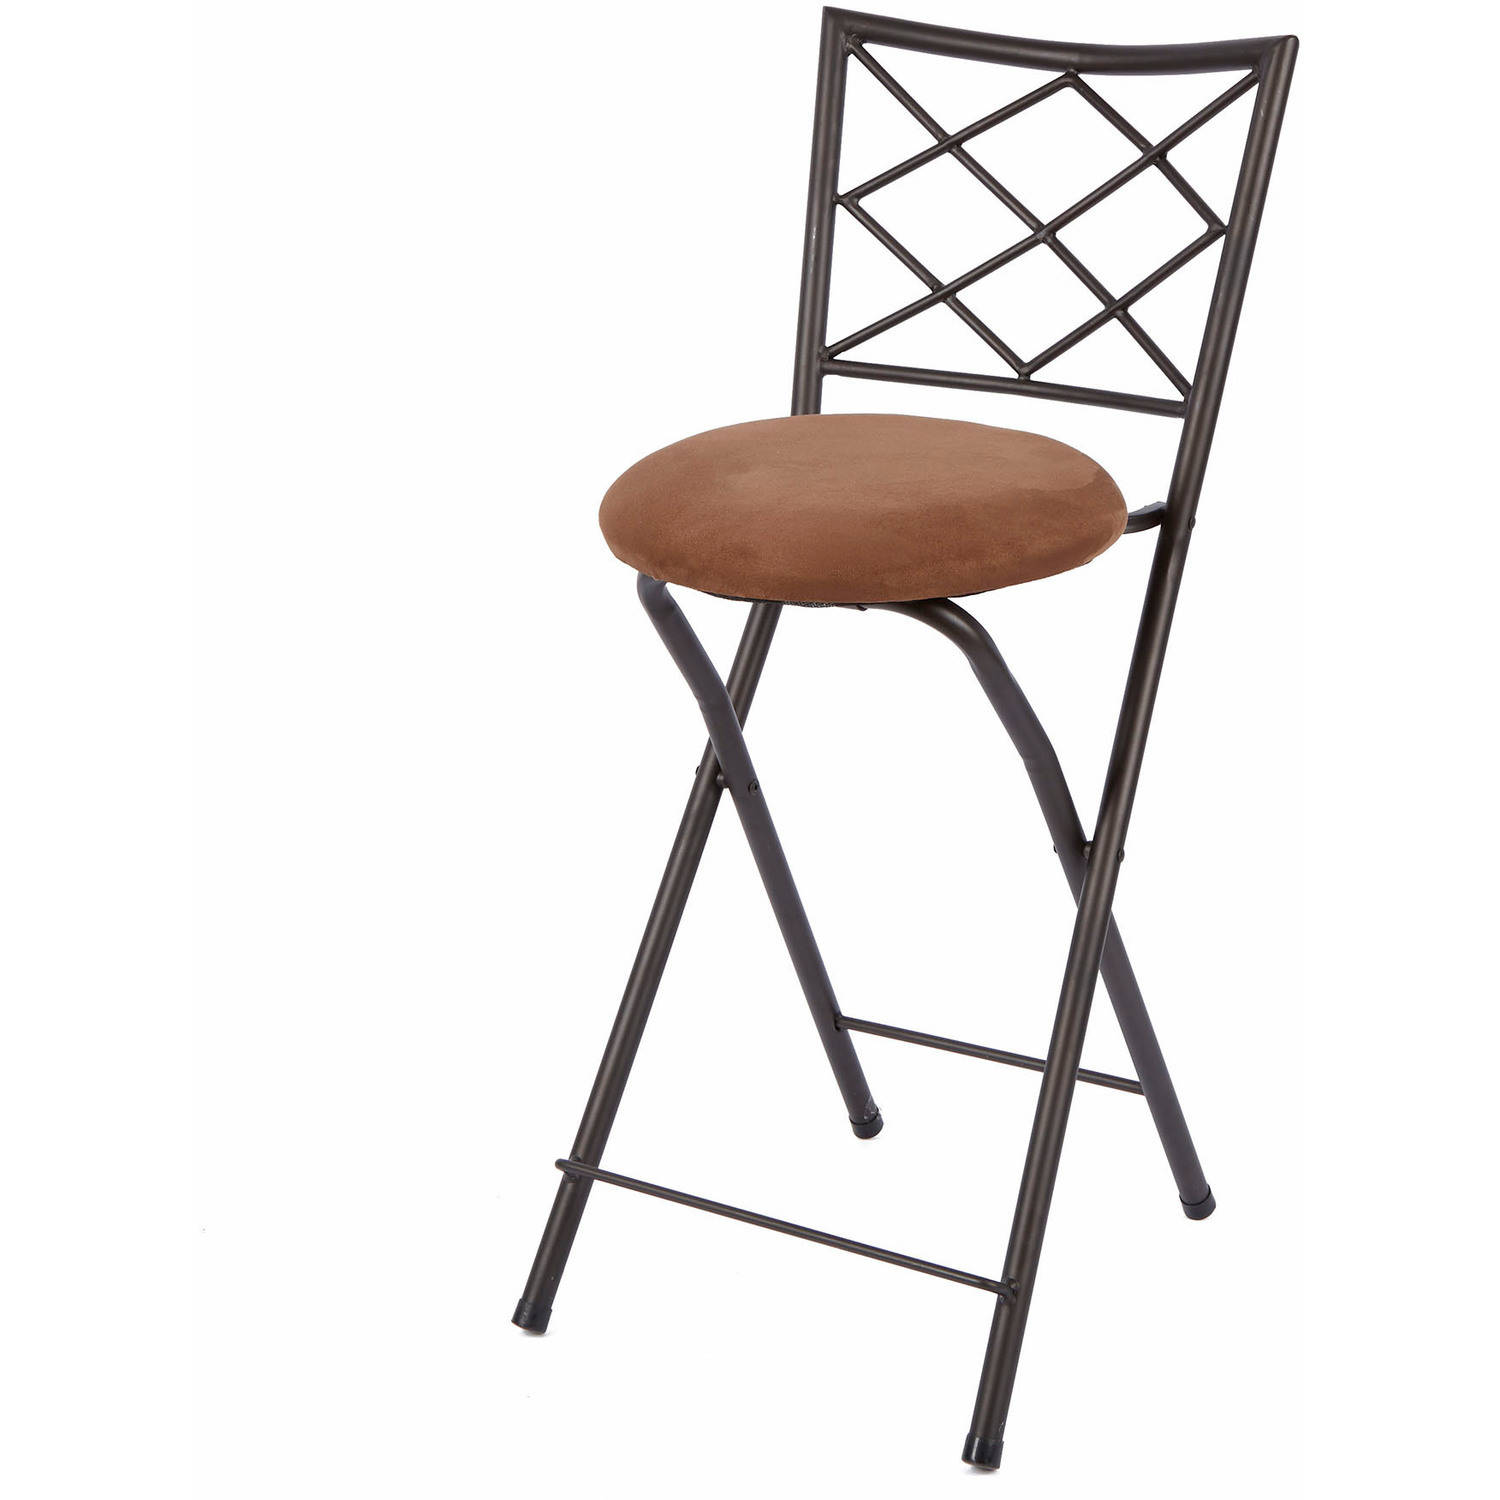 Magnificent Diamond Metal X Back Bronze 42 Folding Stool Tan Walmart Com Spiritservingveterans Wood Chair Design Ideas Spiritservingveteransorg